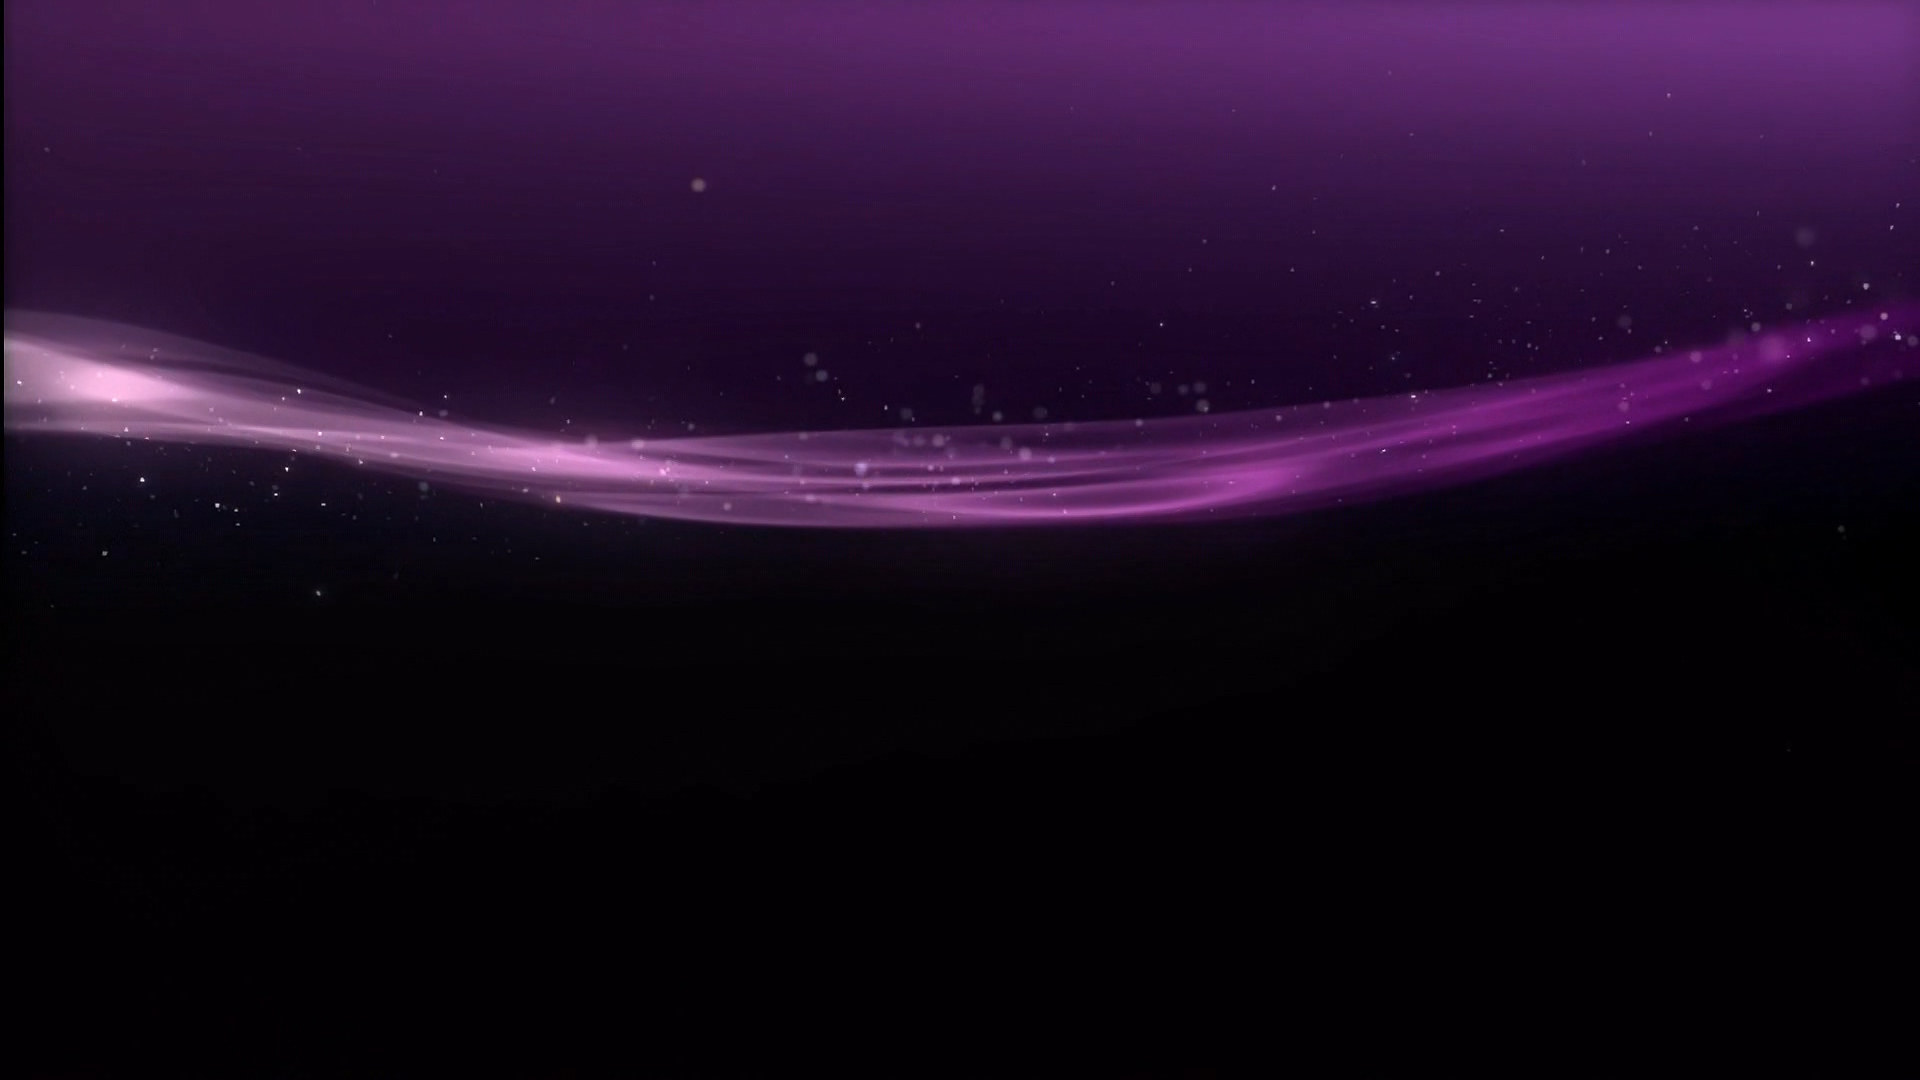 How To Download And Change Ps Wallpaper Without A Computer 1920x1080